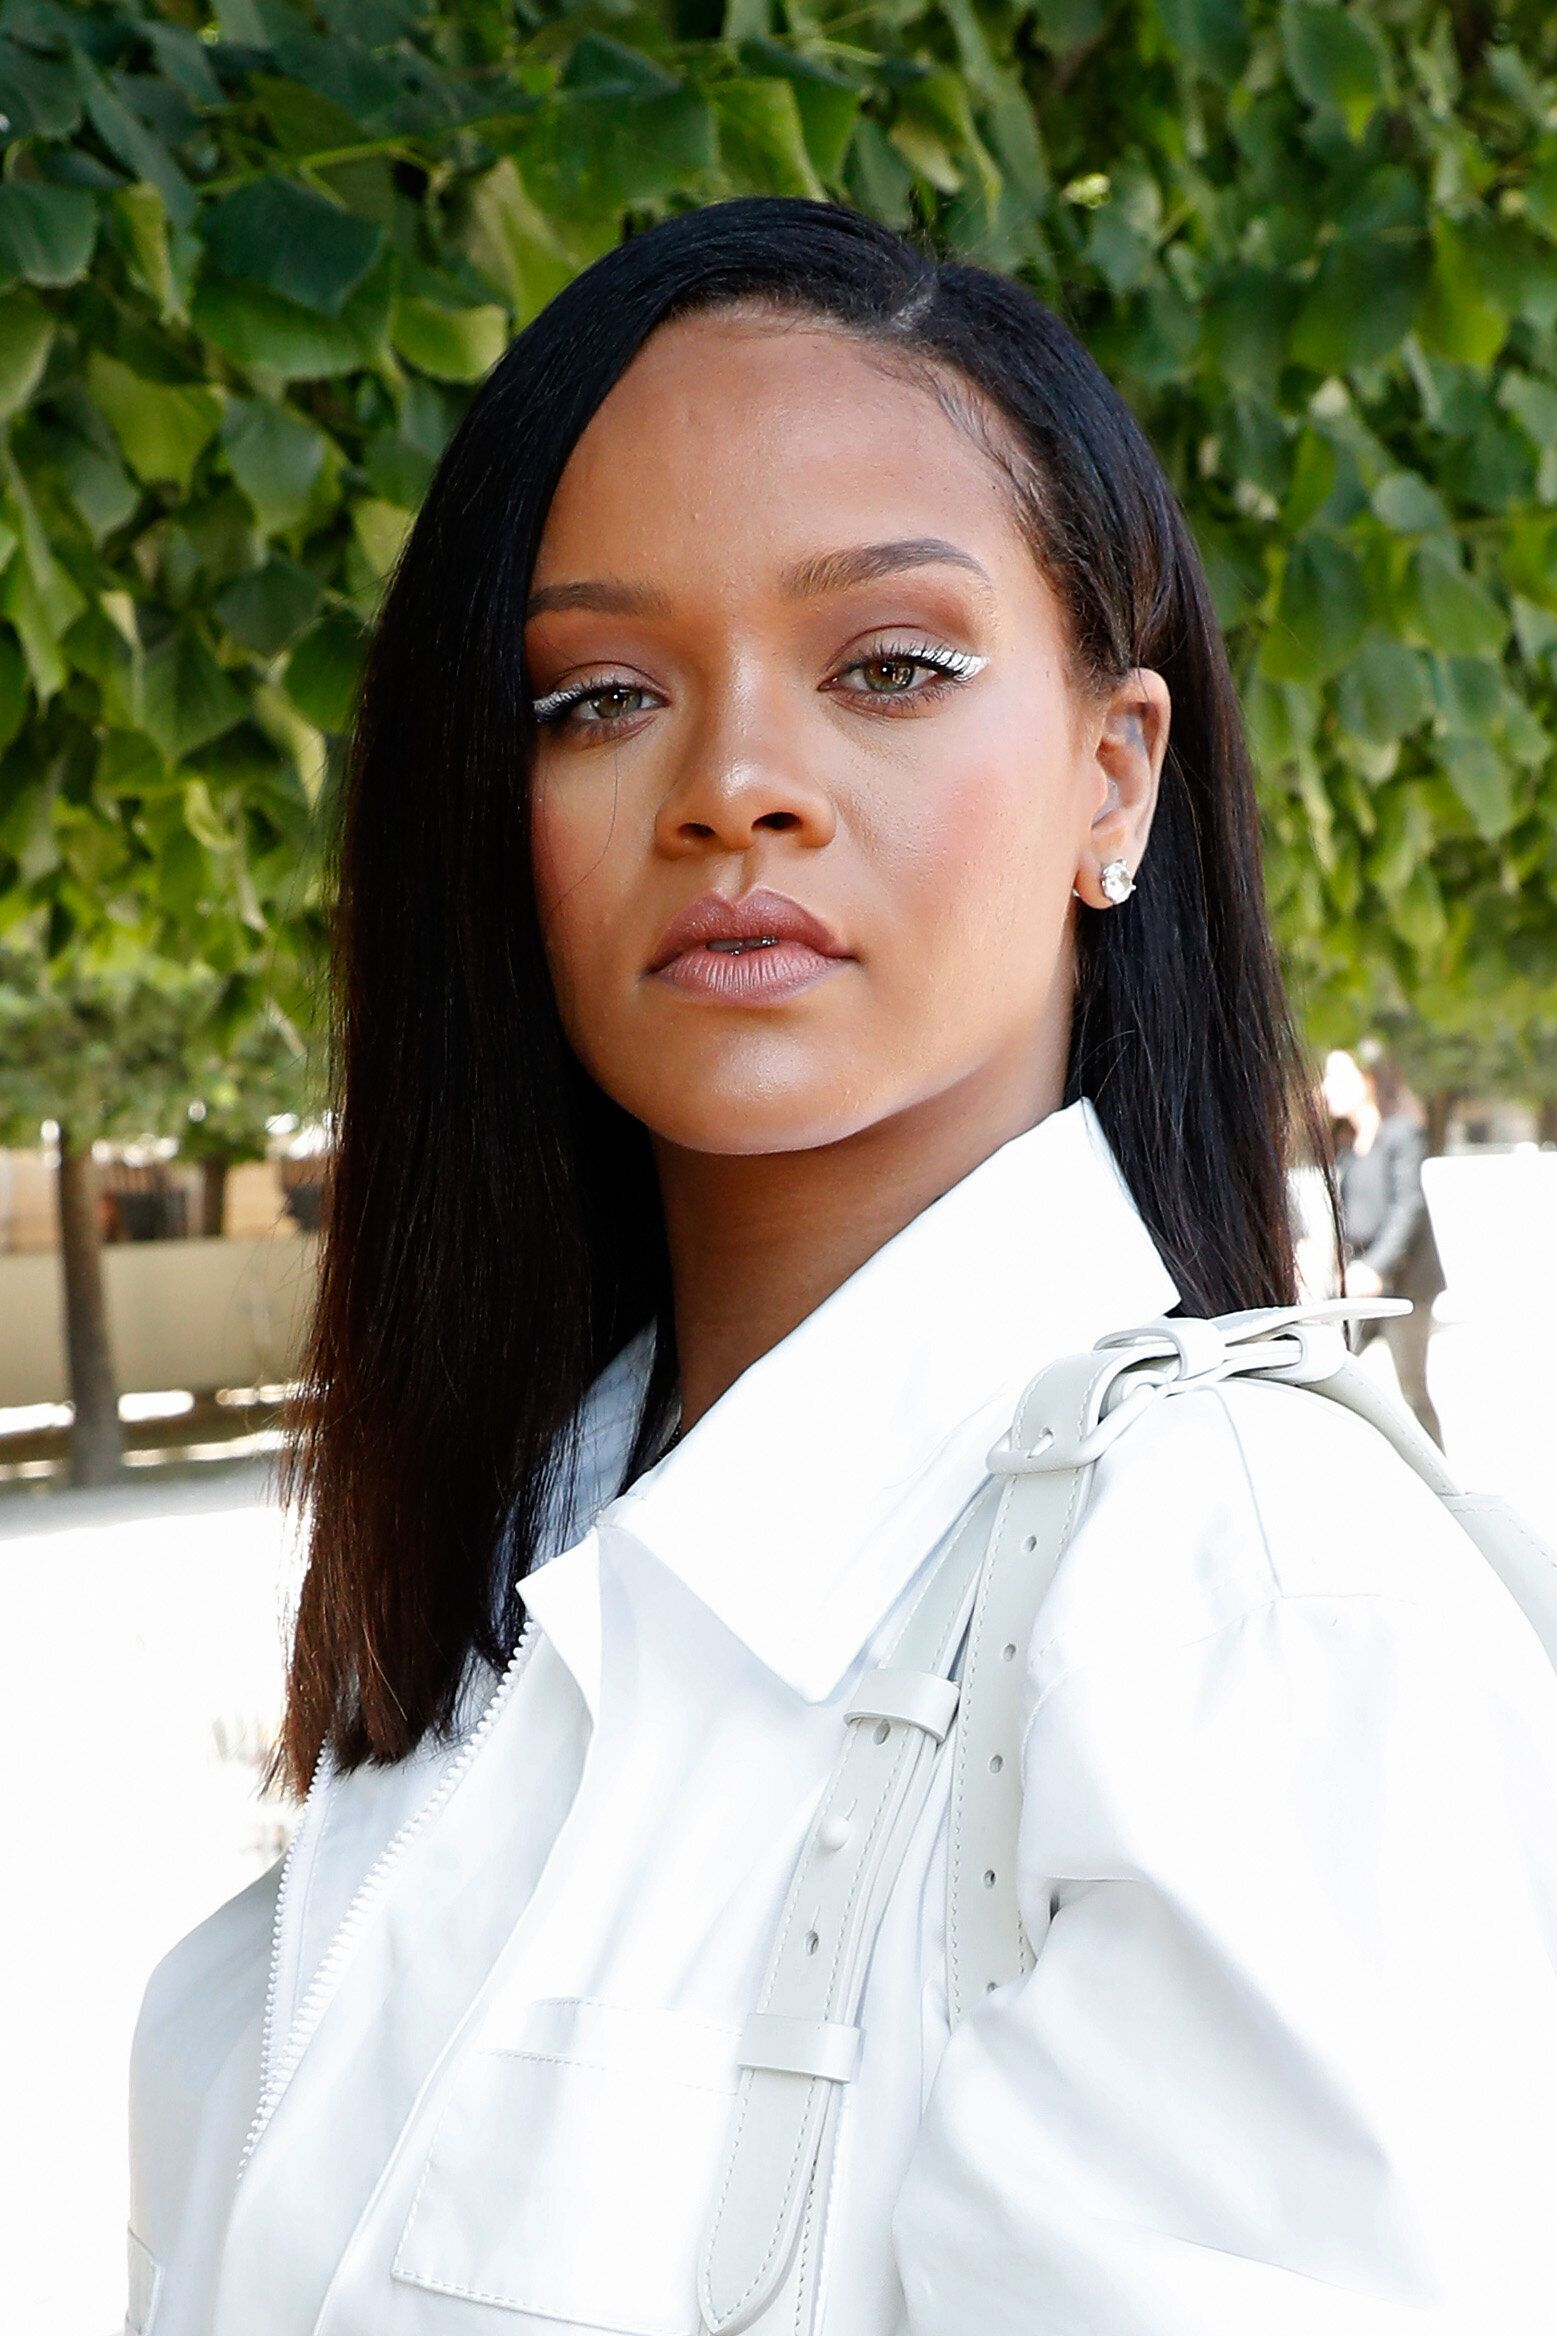 PARIS, FRANCE - JUNE 21:  Singer Rihanna attends the Louis Vuitton Menswear Spring/Summer 2019 show as part of Paris Fashion Week on June 21, 2018 in Paris, France.  (Photo by Bertrand Rindoff Petroff/Getty Images)